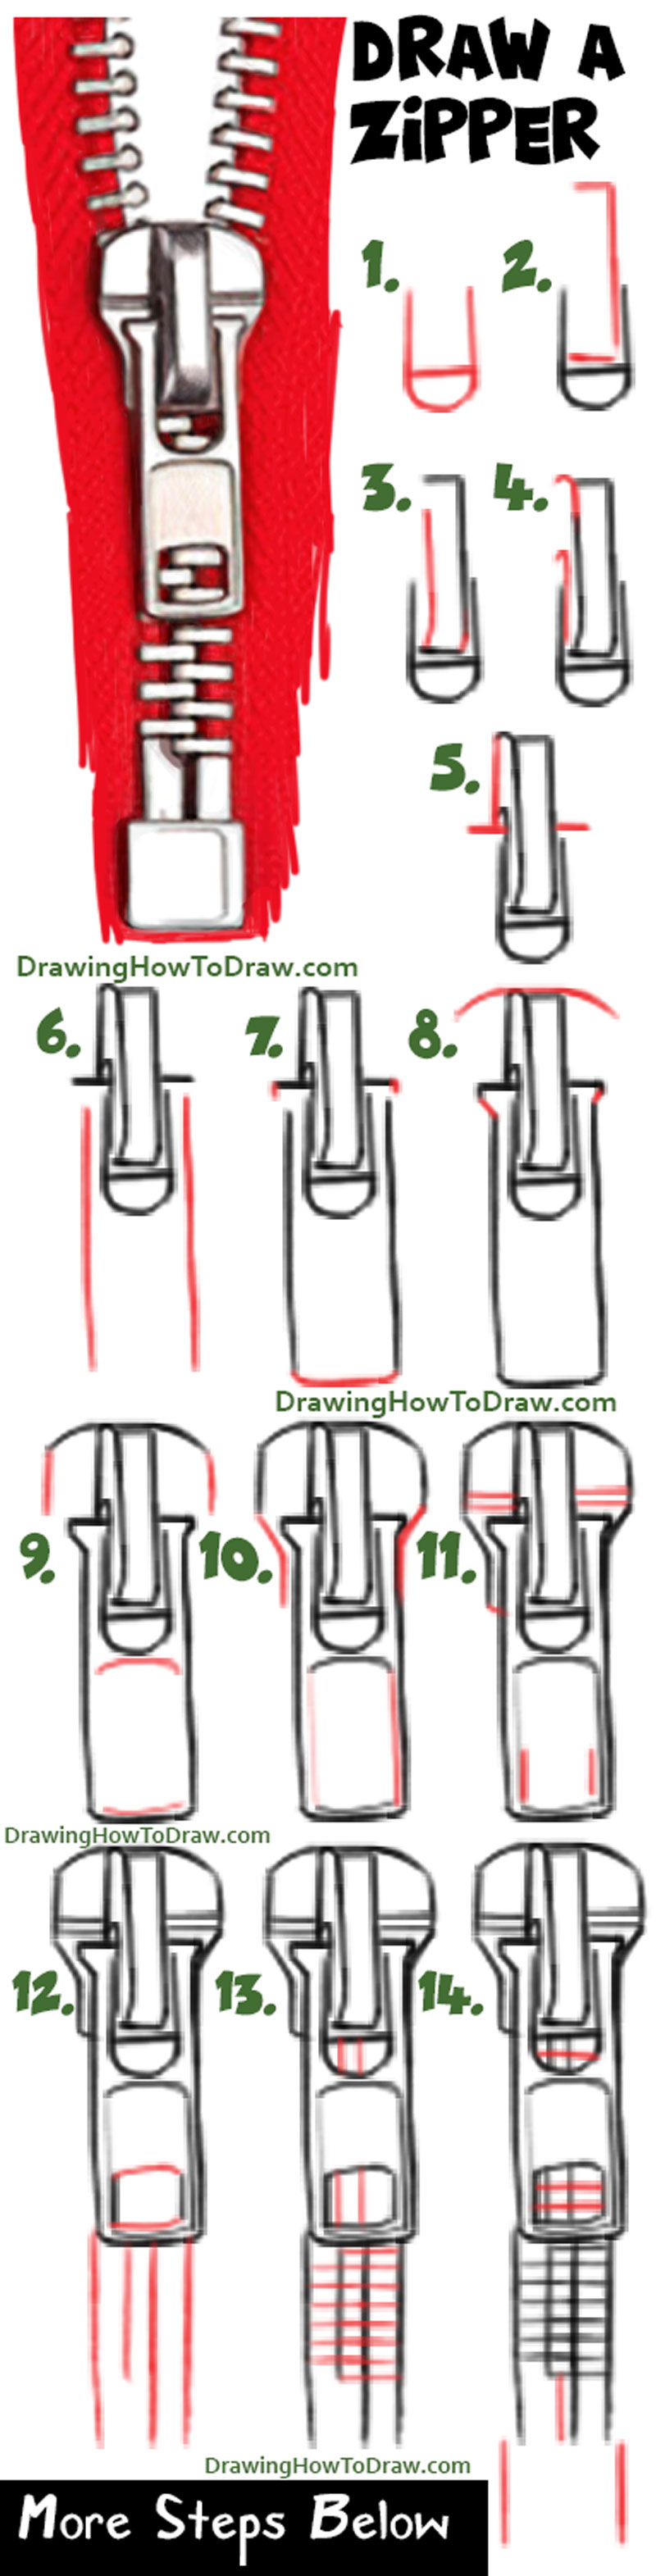 LearnHow to Draw a Zipper Easy Step by Step Drawing Tutorial for Beginners